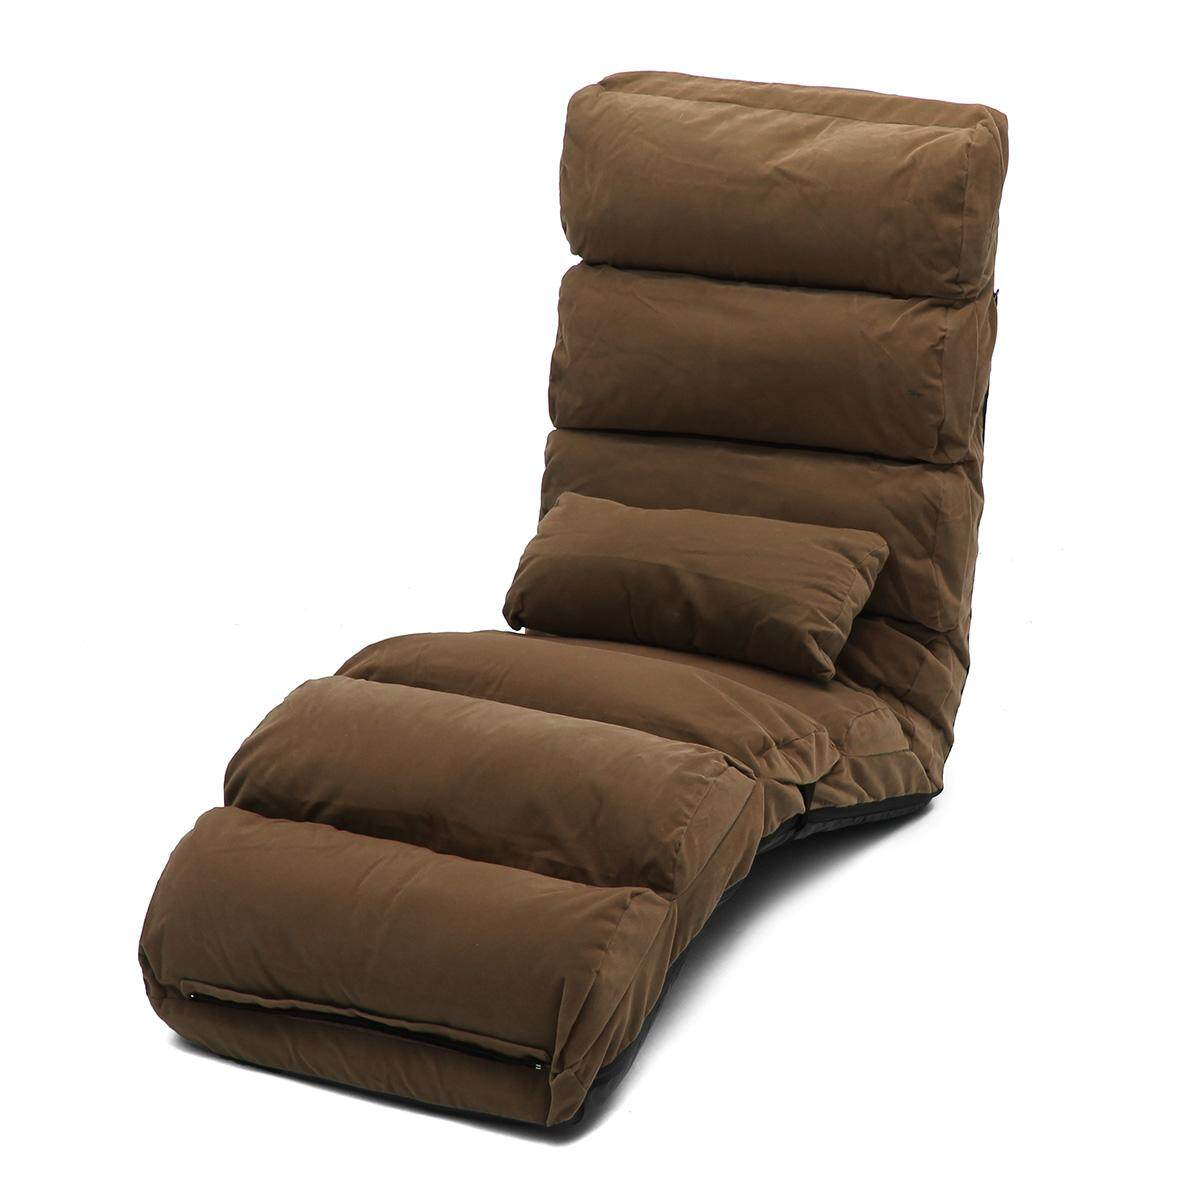 Lounge Sofa Bed Floor Recliner Folding Chaise Chair Adjustable Foldable AU Home light coffee(Standard Size)